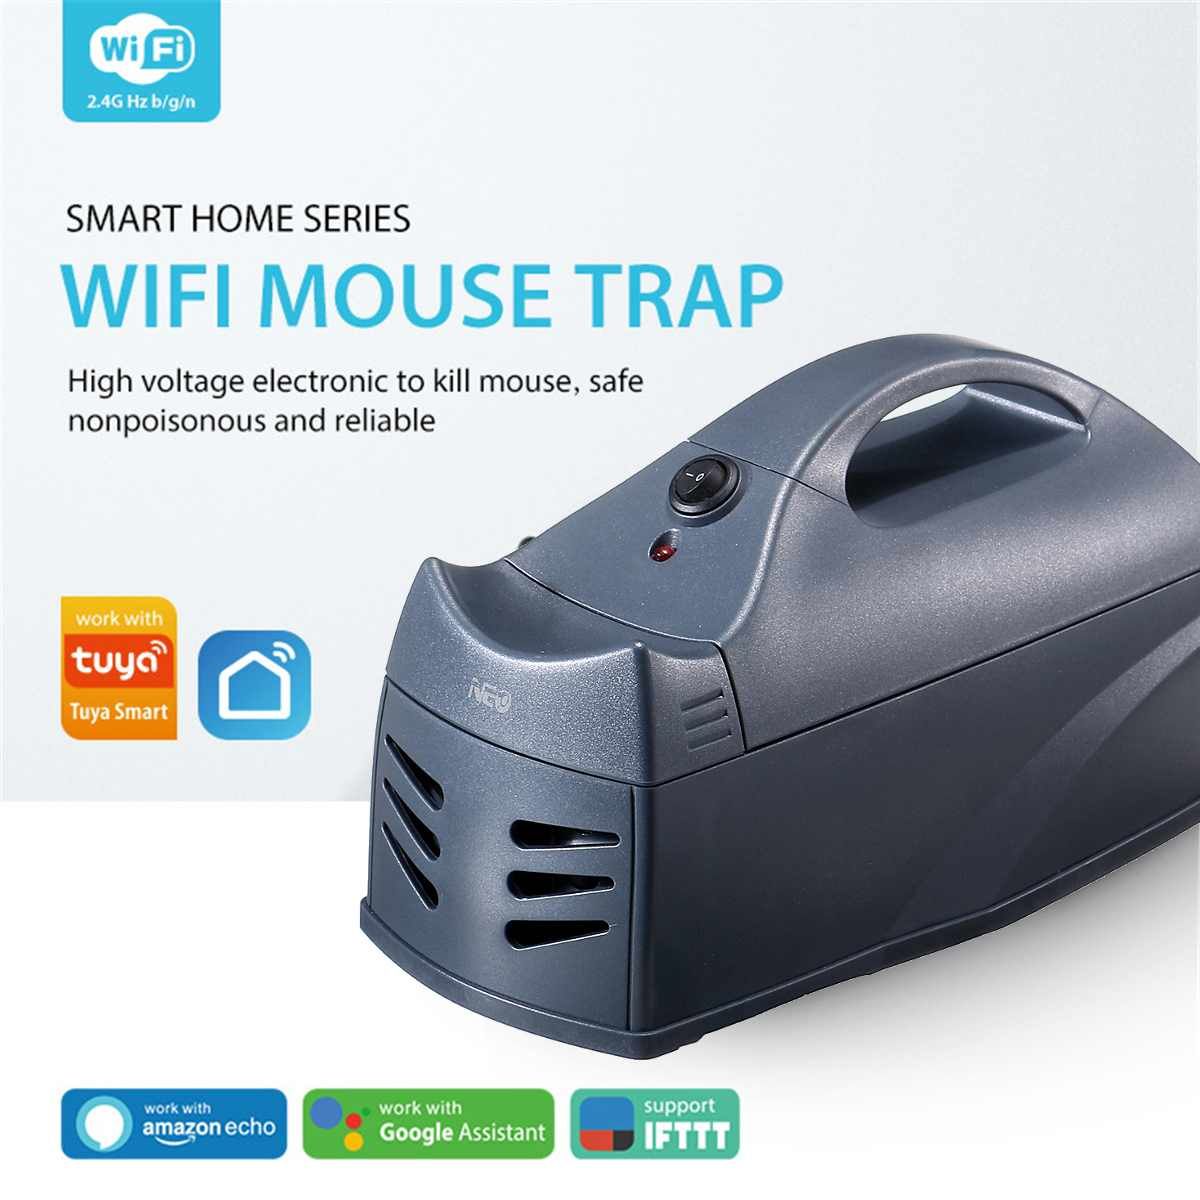 Wireless NEO Mouse Killer Mousetrap Rat Pest Trap Catcher Rodent Killer WiFi Sensor APP Control For Mobile Phone 222X112X120mm